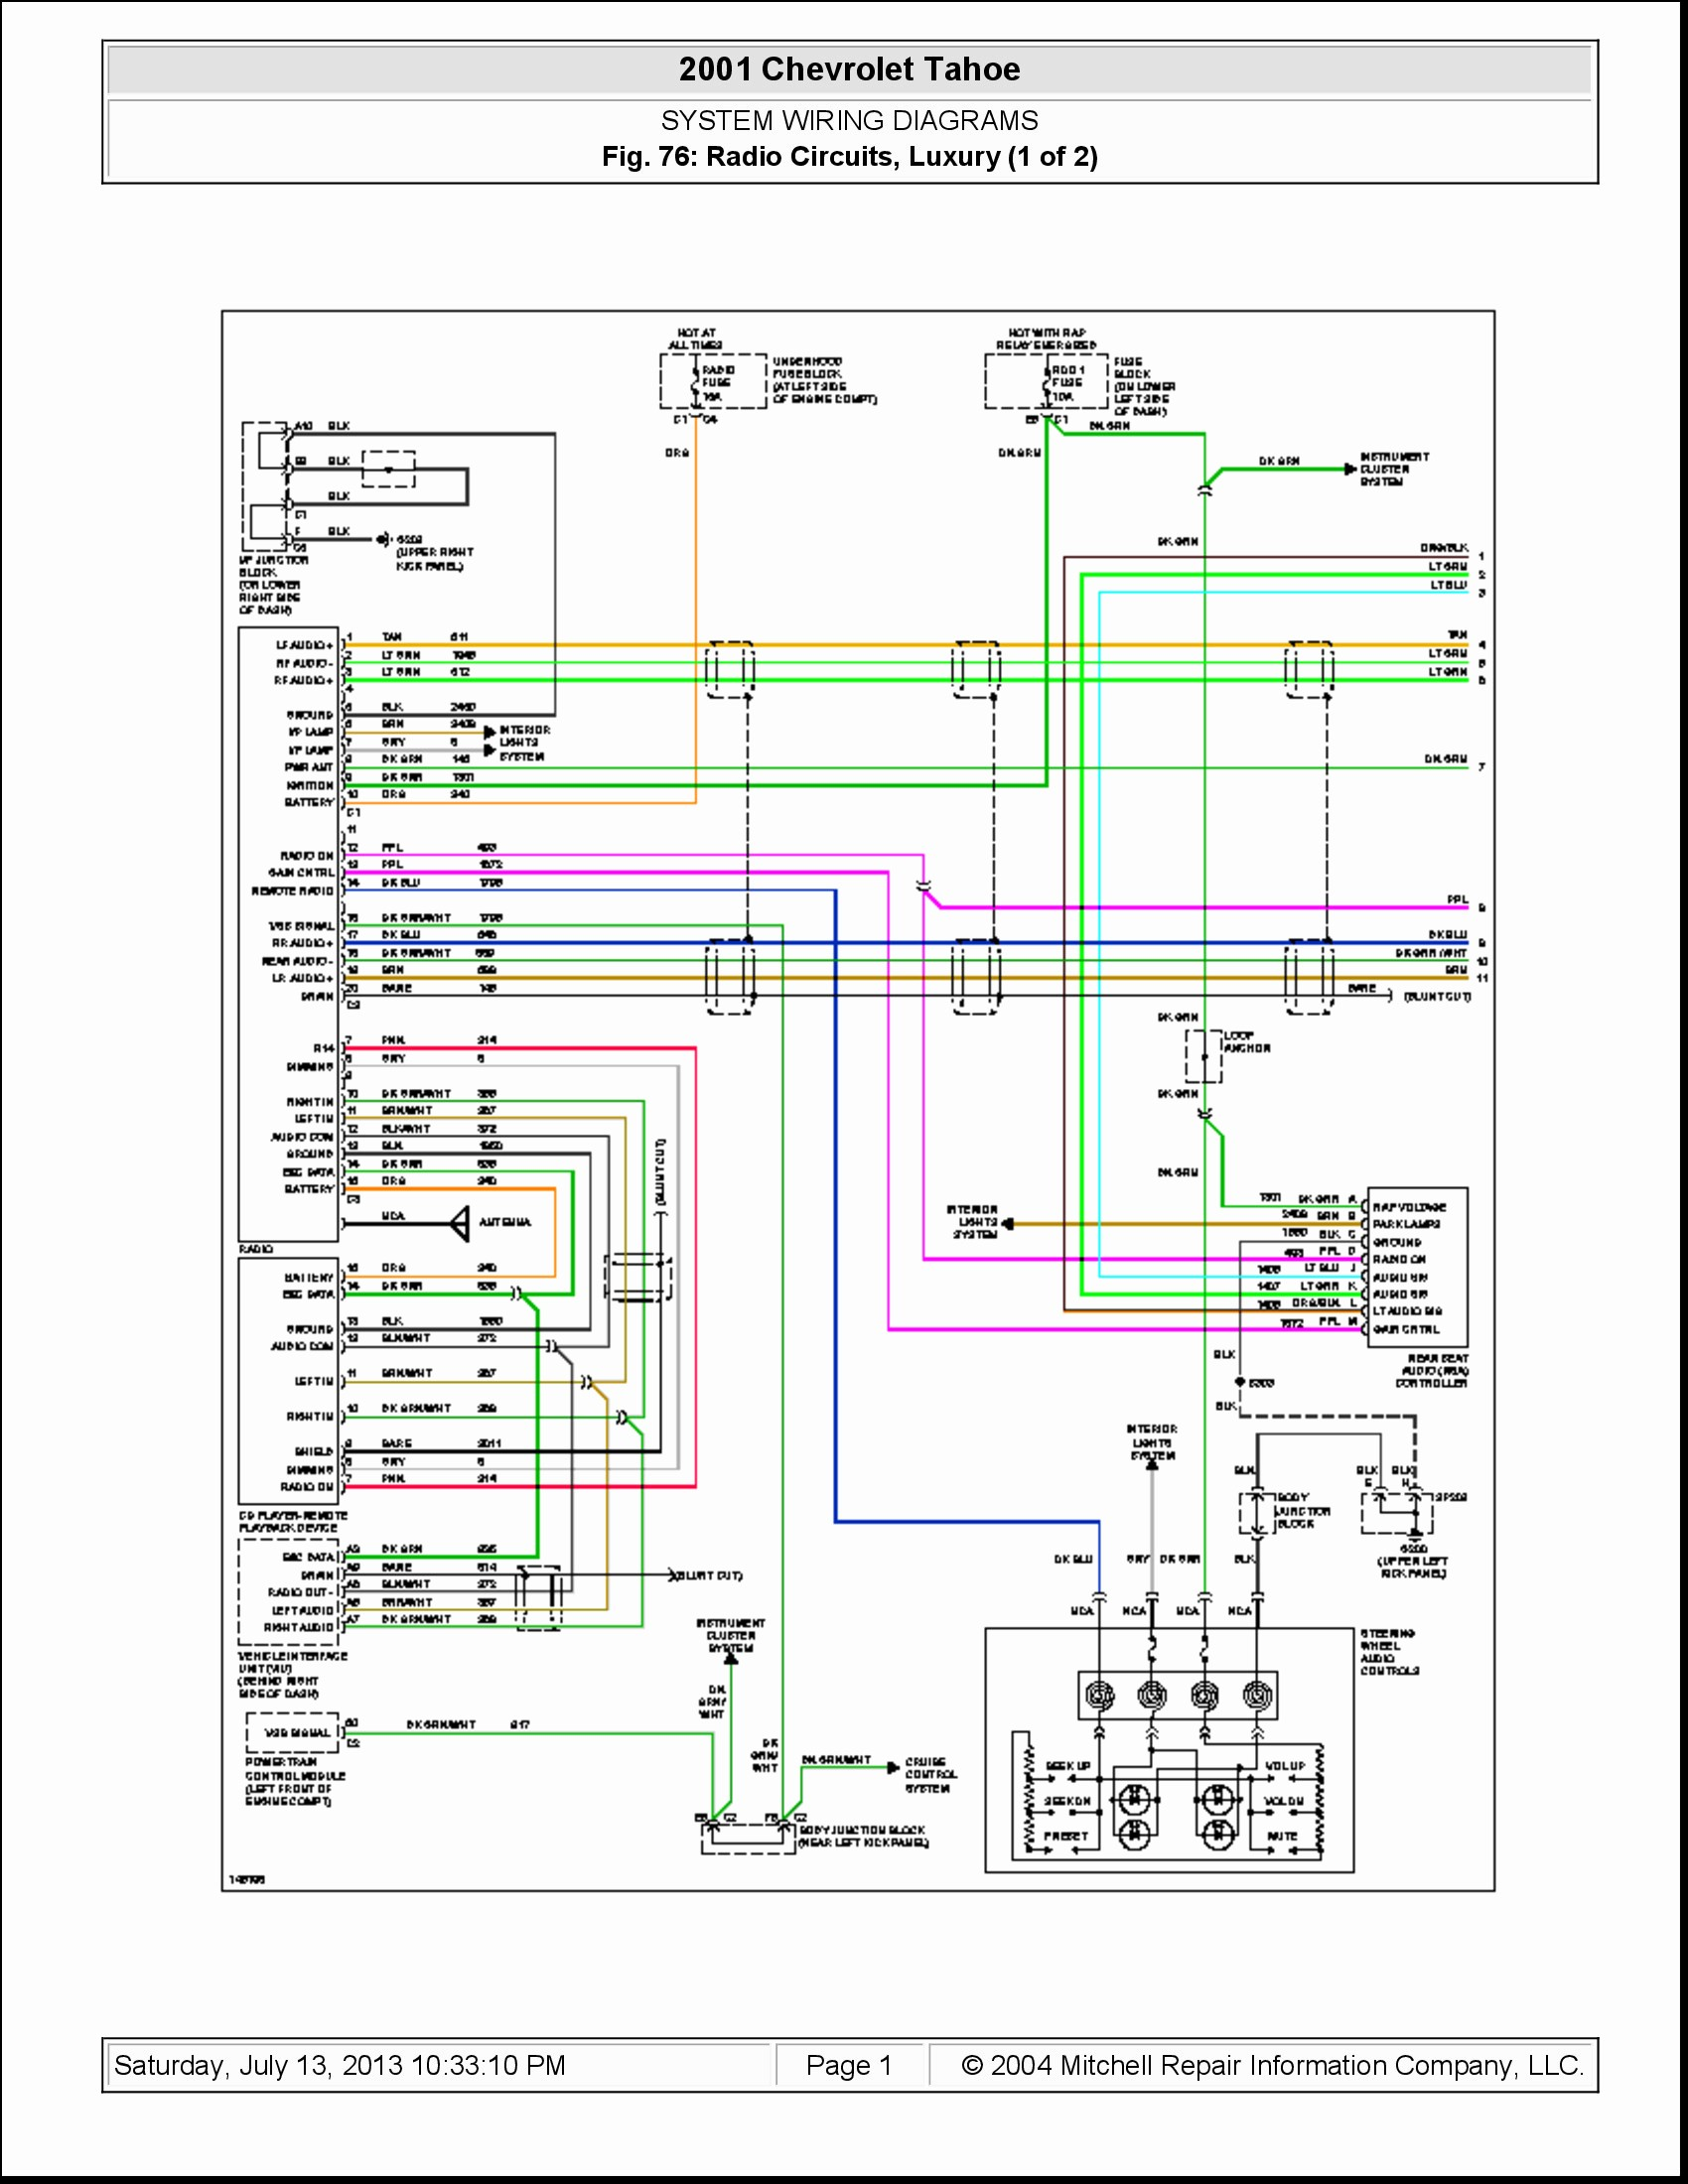 2005 Chevy Wiring Diagram - Diagram Schematic on